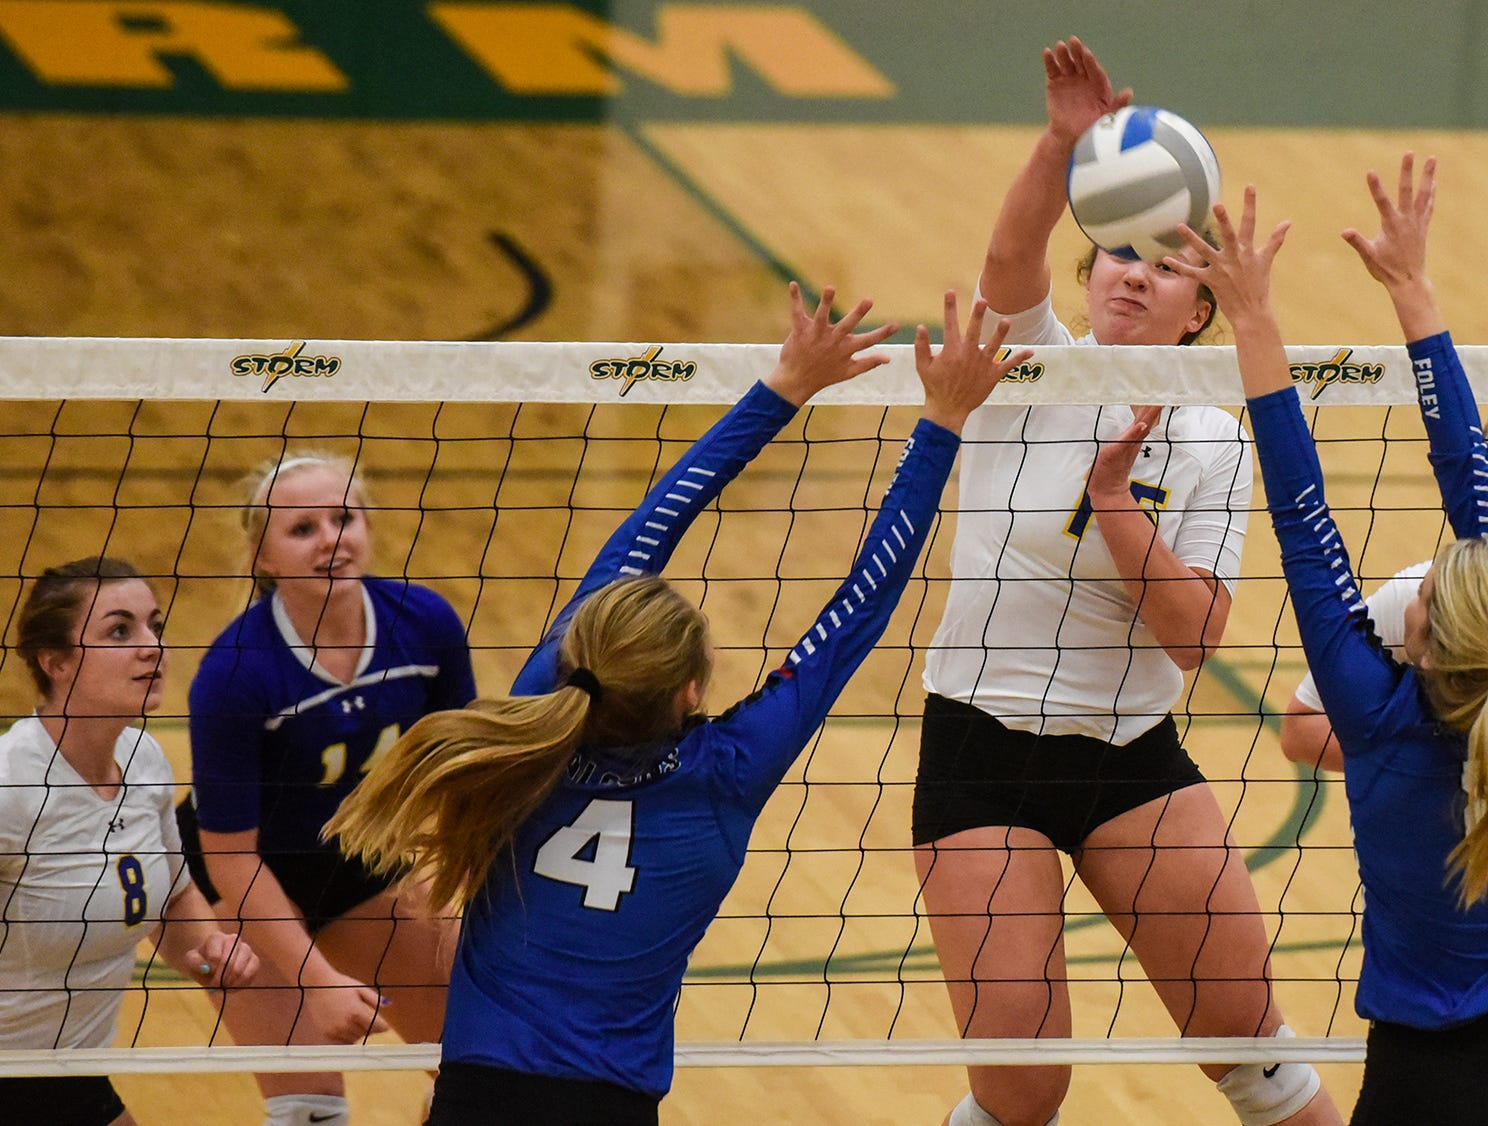 Cathedral's Gabby Heying attempts a kill during the Section 6-2A volleyball semifinals Thursday, Nov. 1, at Sauk Rapids-Rice High School.